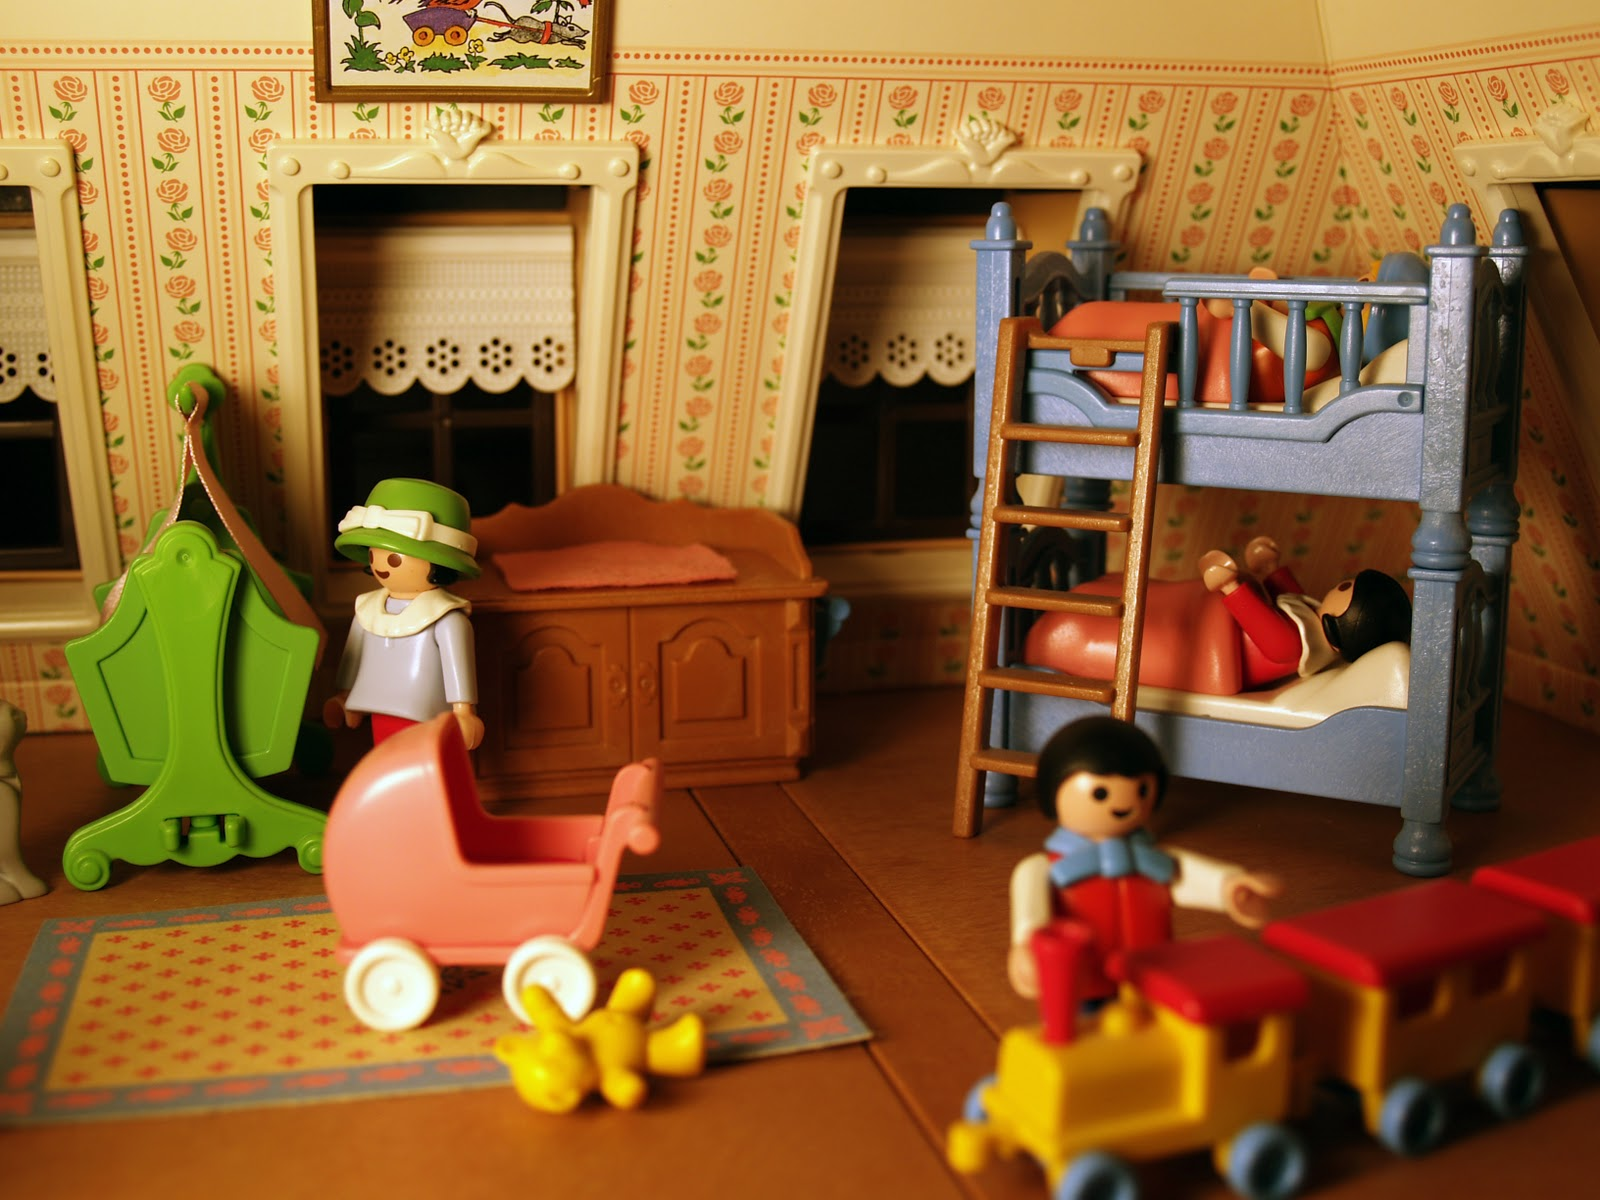 Schlafzimmer Playmobil Pop Circus: Show & Tell: Our Playmobil Victorian Dollhouse